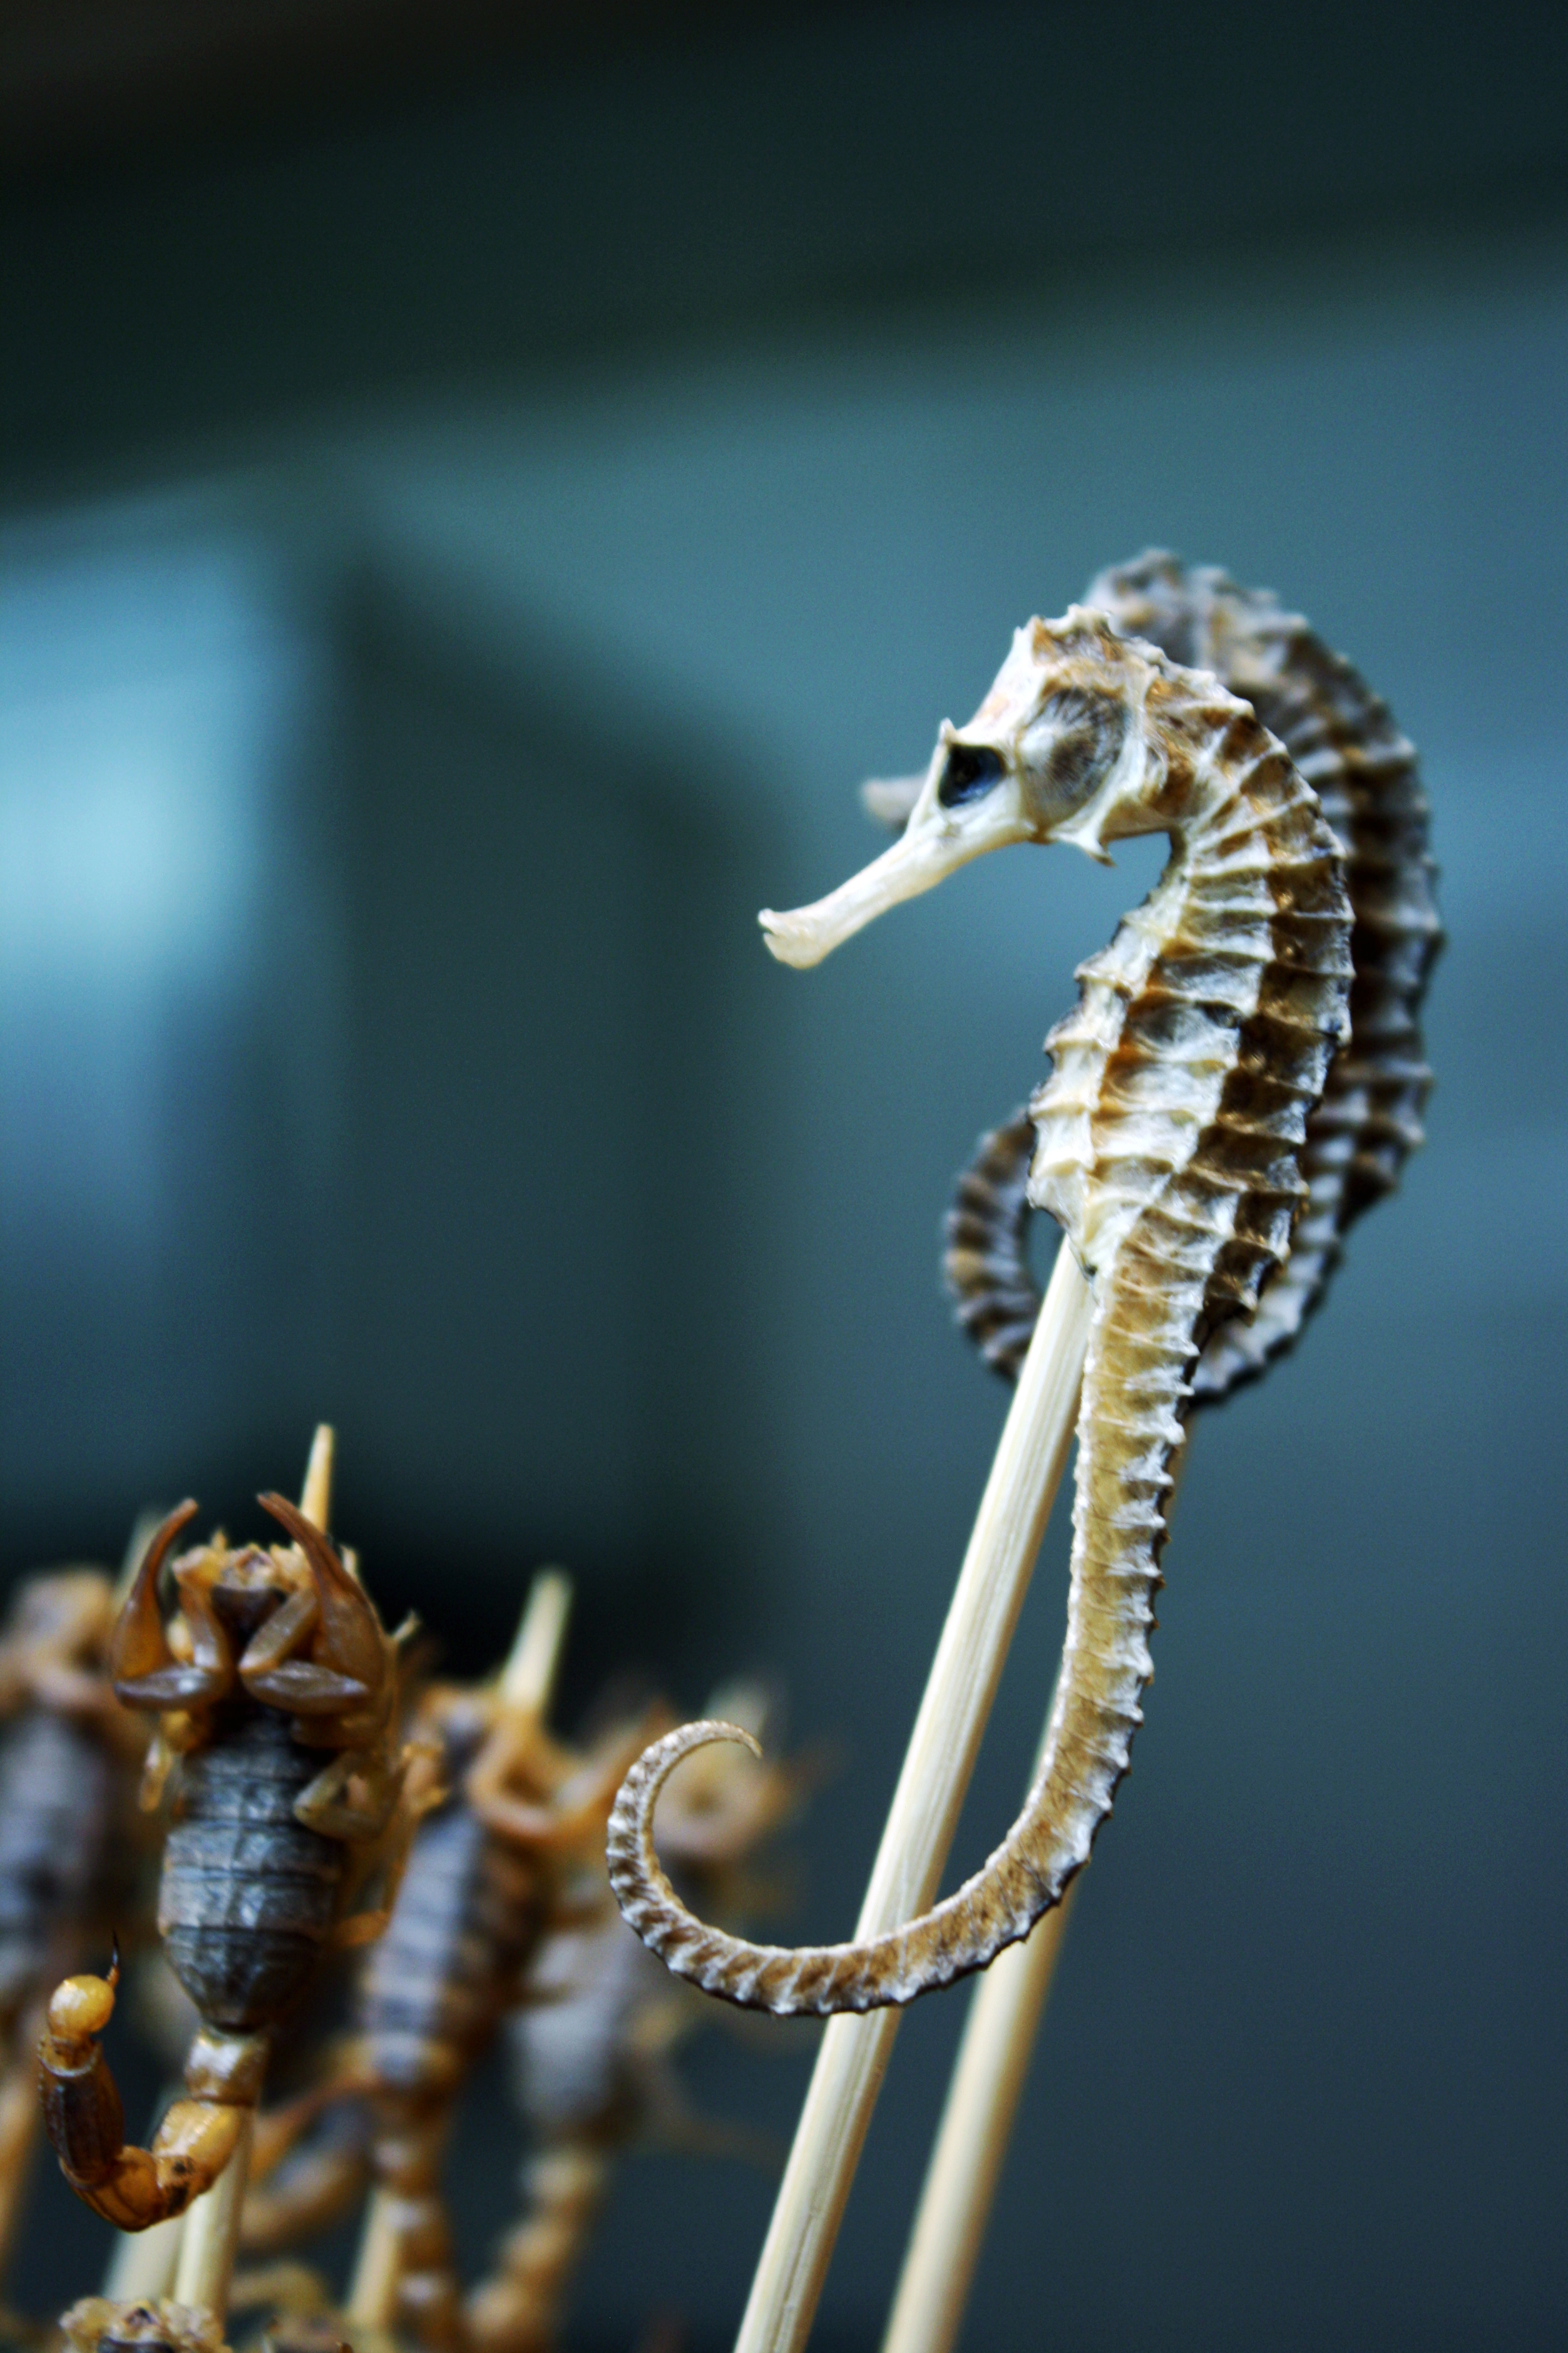 Seahorse on a Stick by Wh4T